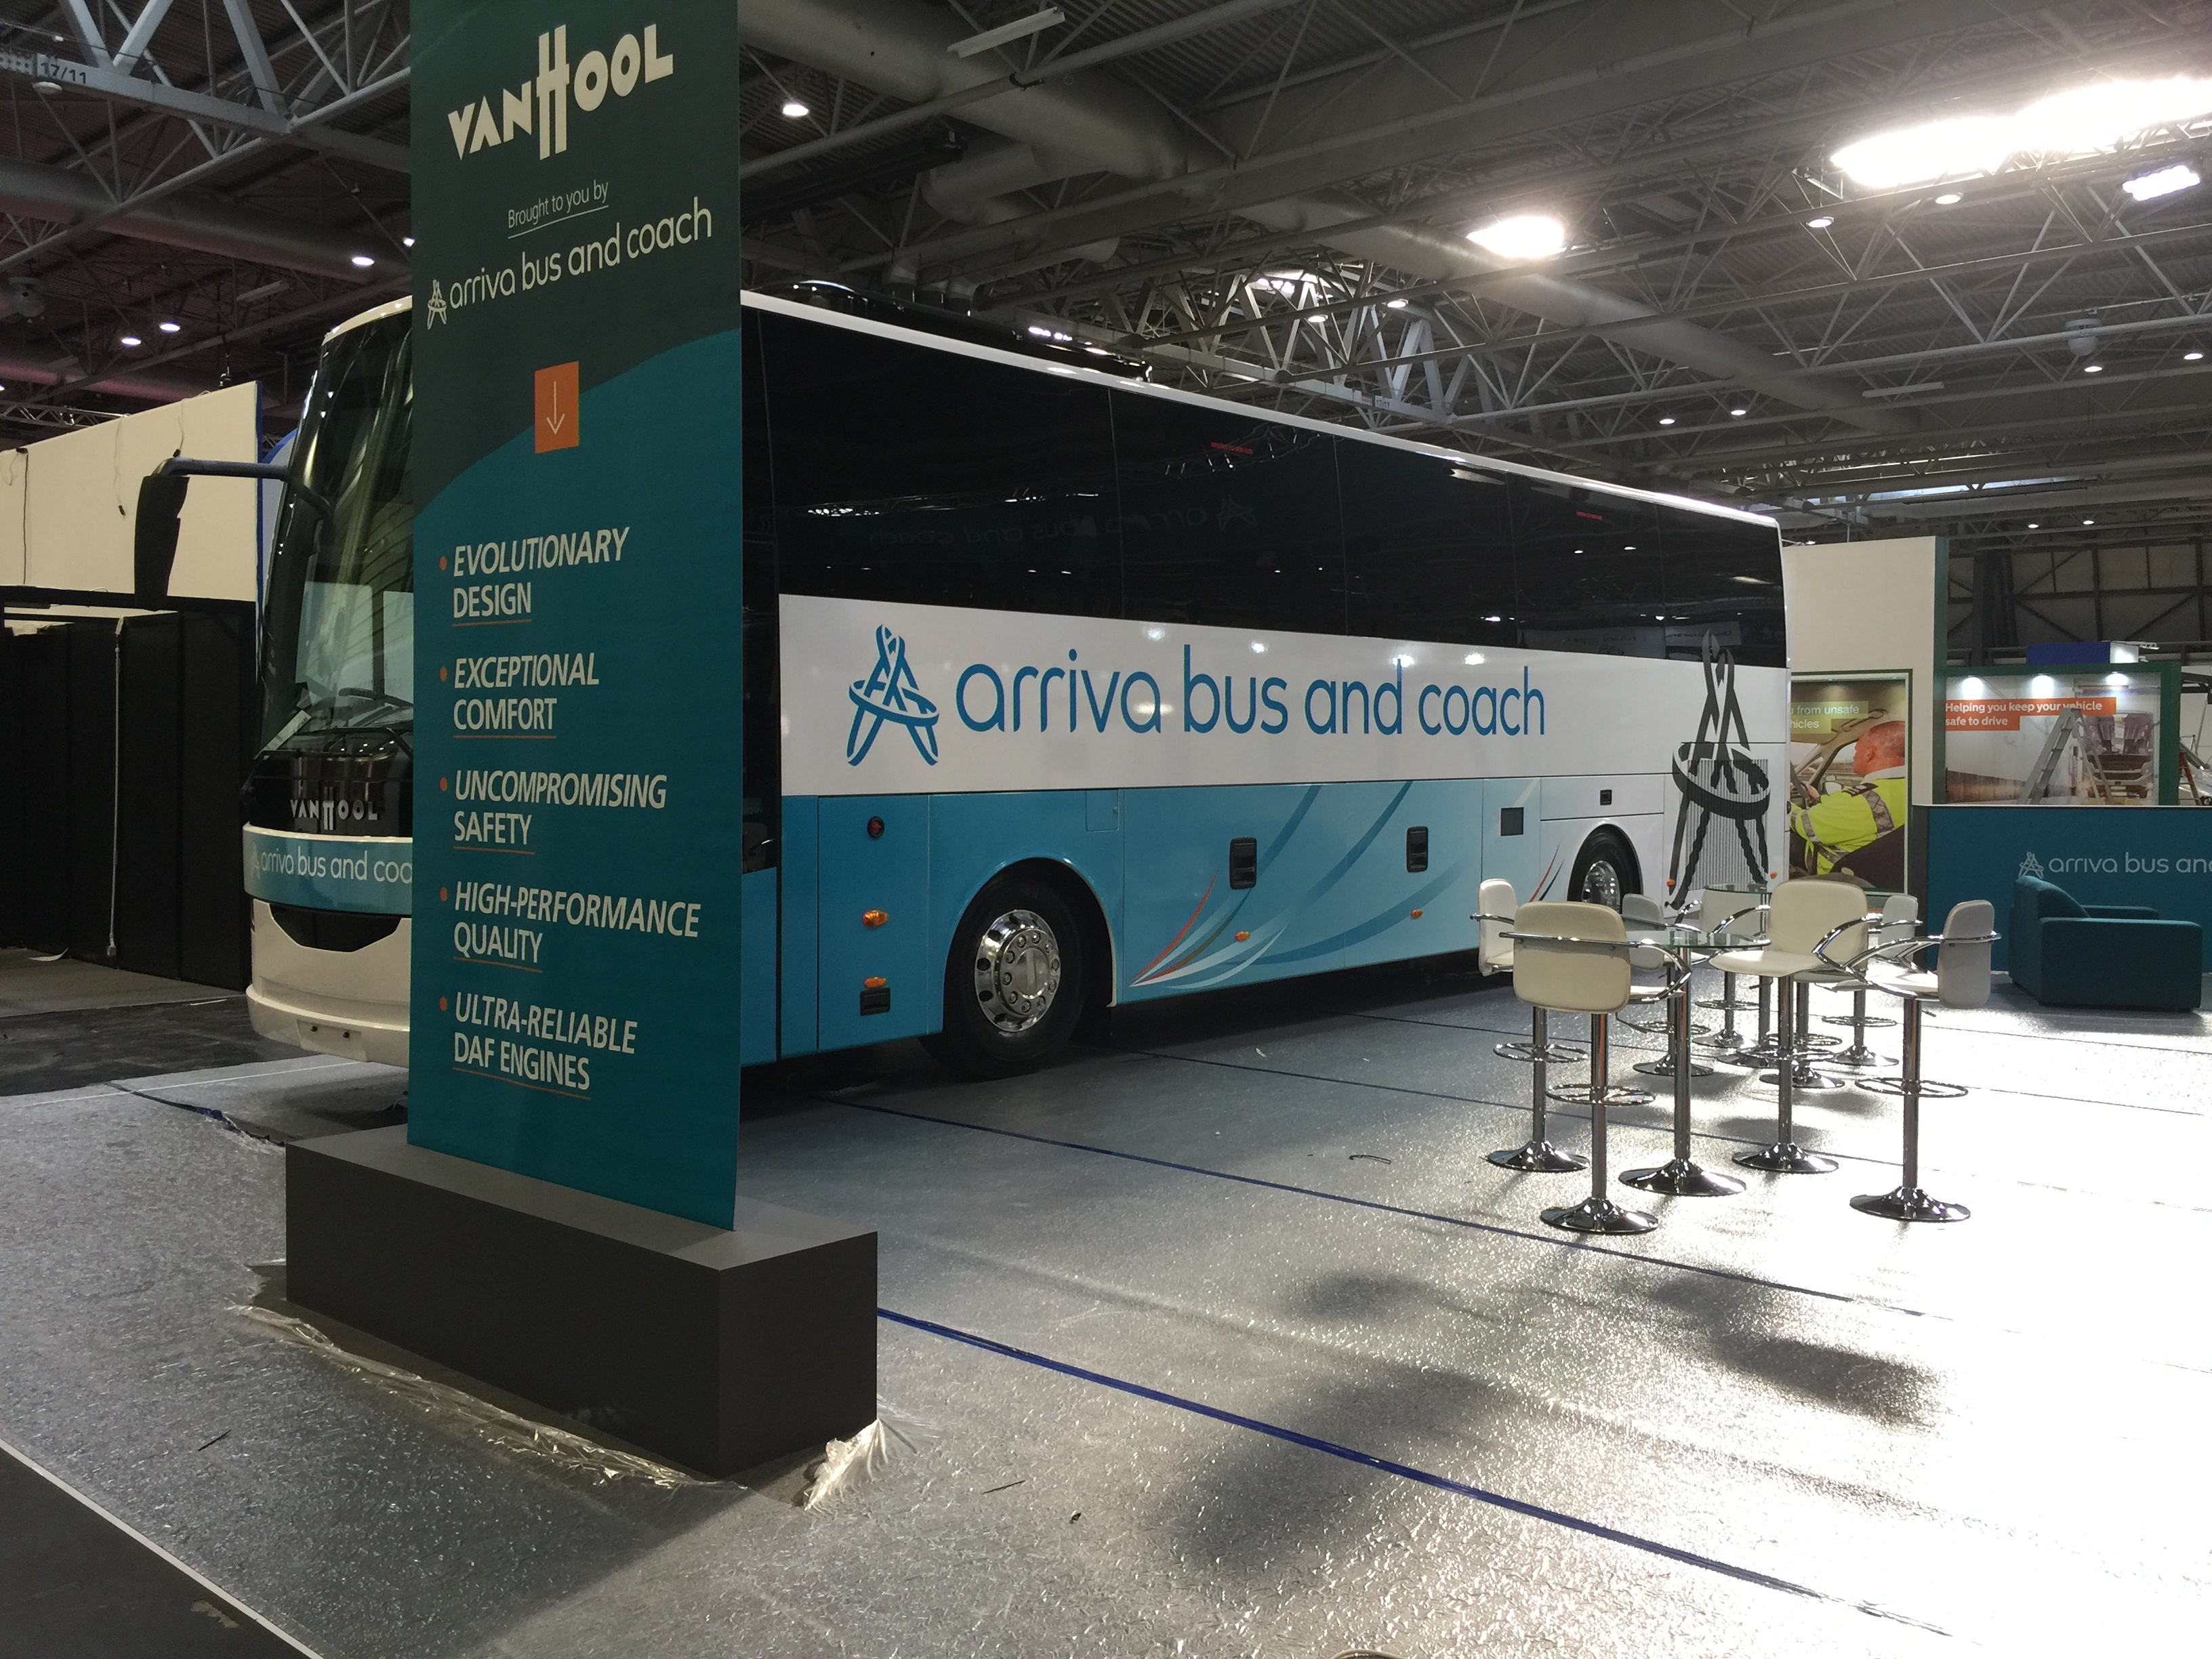 Arriva bus and coach printed coach design for NEC Coach show